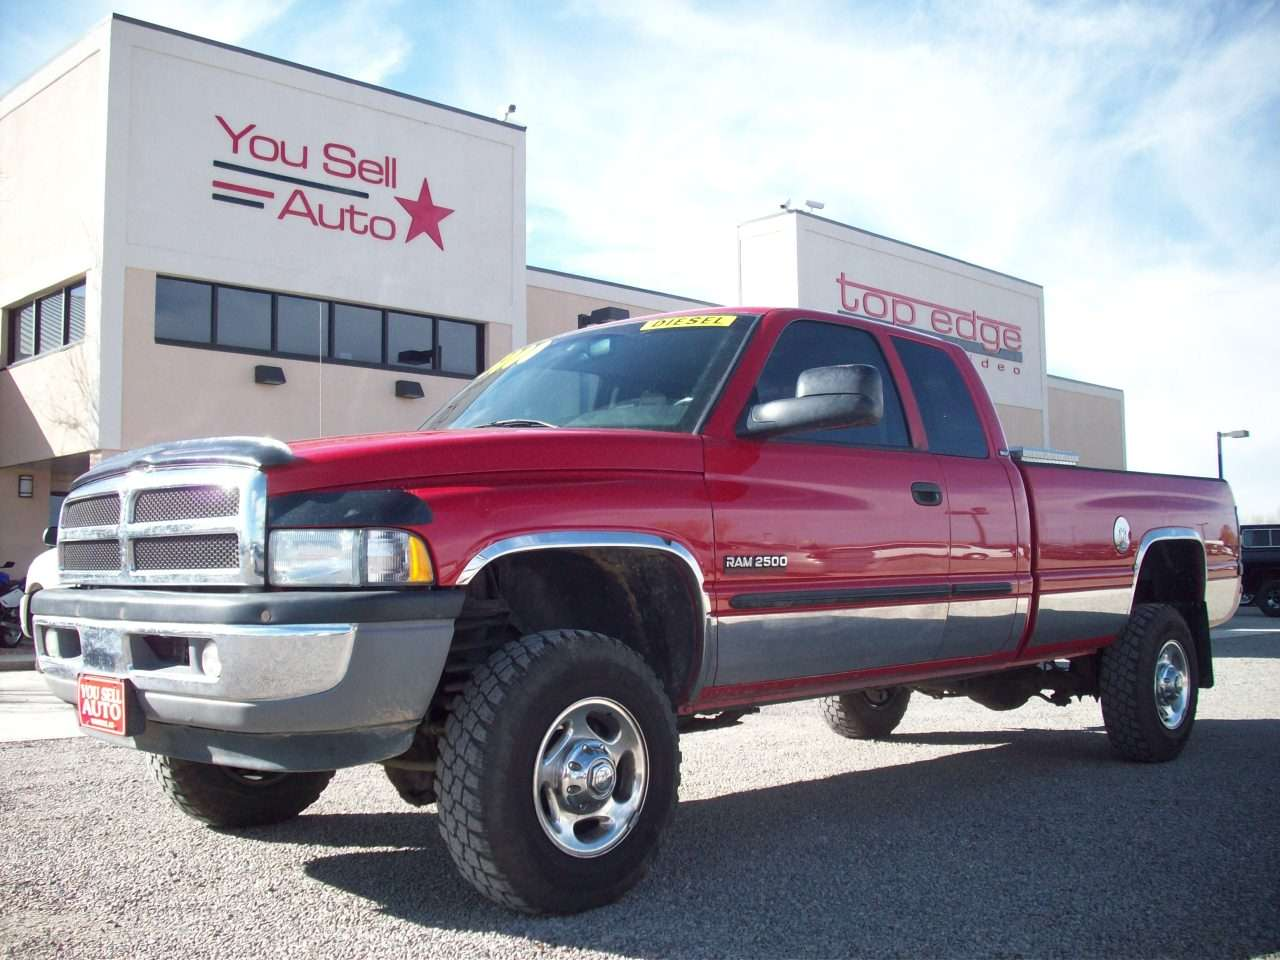 2002 dodge ram 2500 slt laramie turbo diesel 15 000 you sell auto. Black Bedroom Furniture Sets. Home Design Ideas